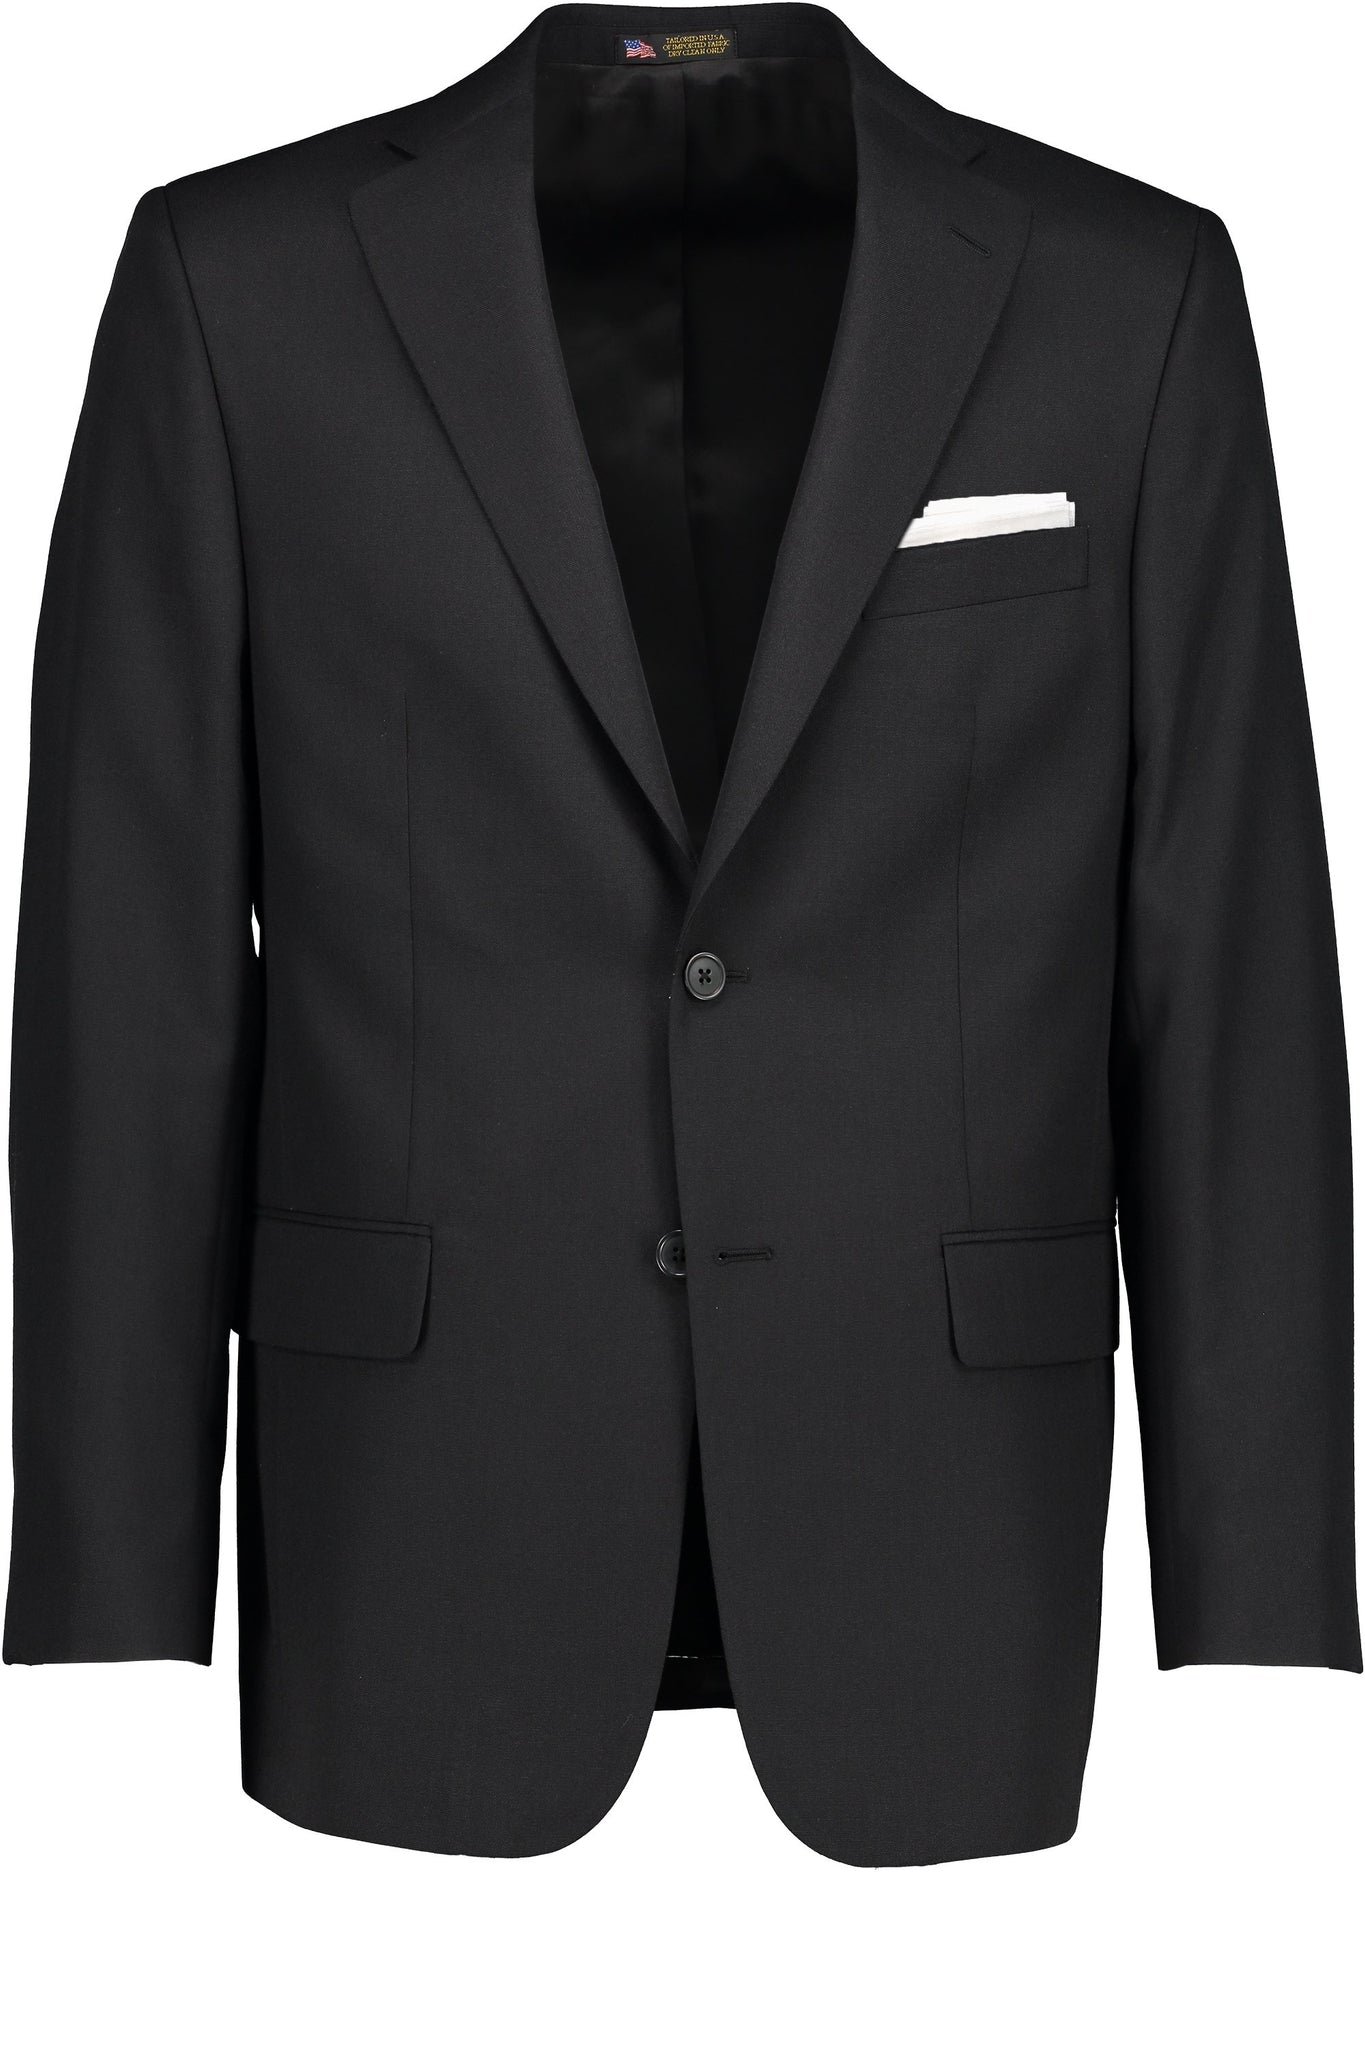 Classic Fit Black Wool Traveler Suit Separate Jacket -  Hardwick.com